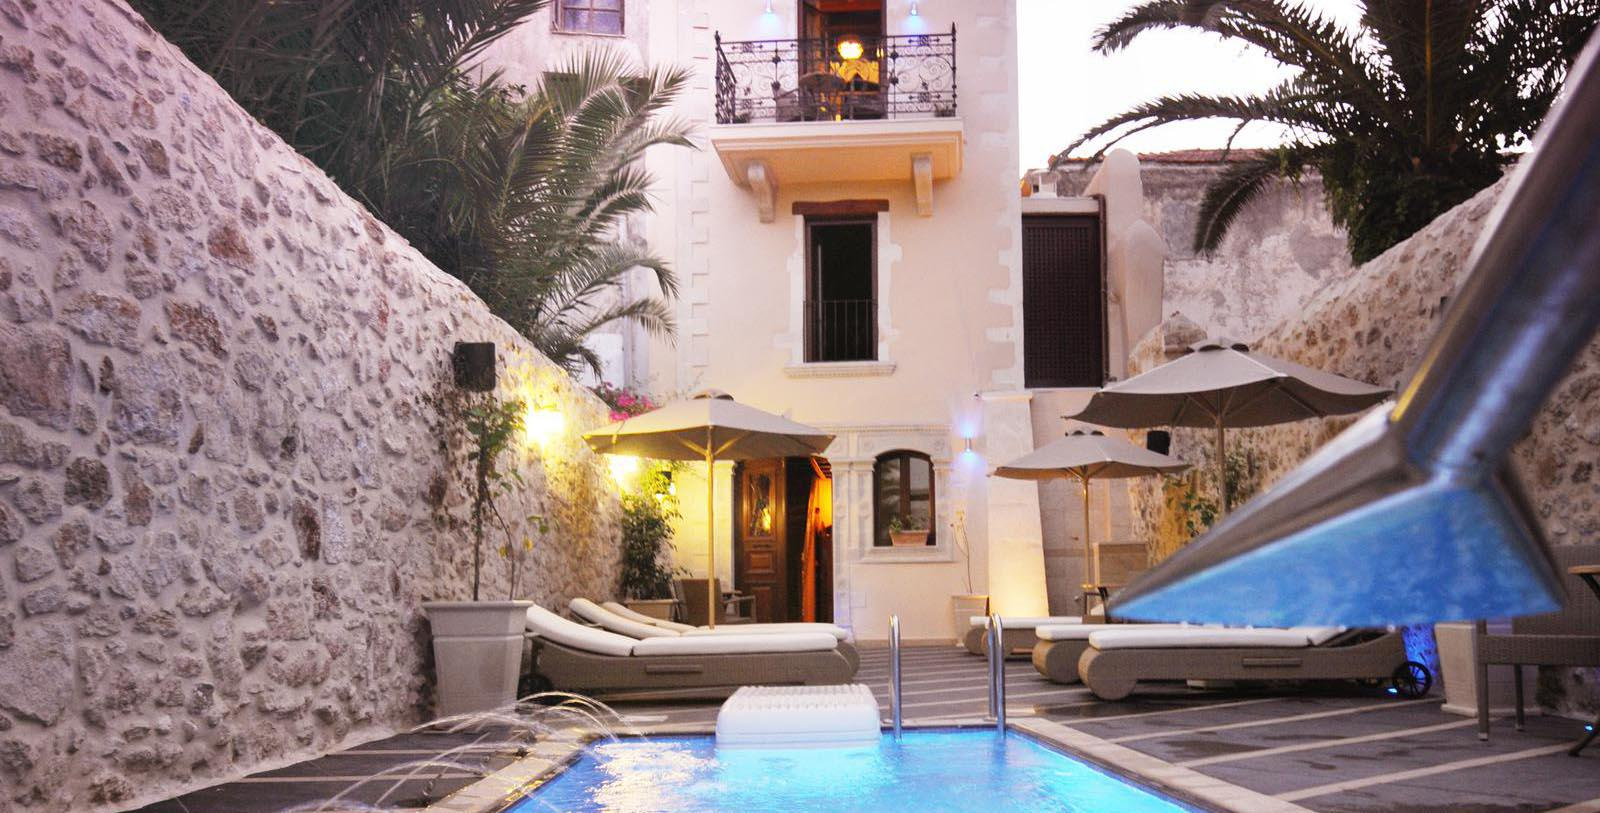 Image of hotel exterior and pool Antica Dimora Suites, 1820, Member of Historic Hotels Worldwide, in Crete, Greece, Special Offers, Discounted Rates, Families, Romantic Escape, Honeymoons, Anniversaries, Reunions